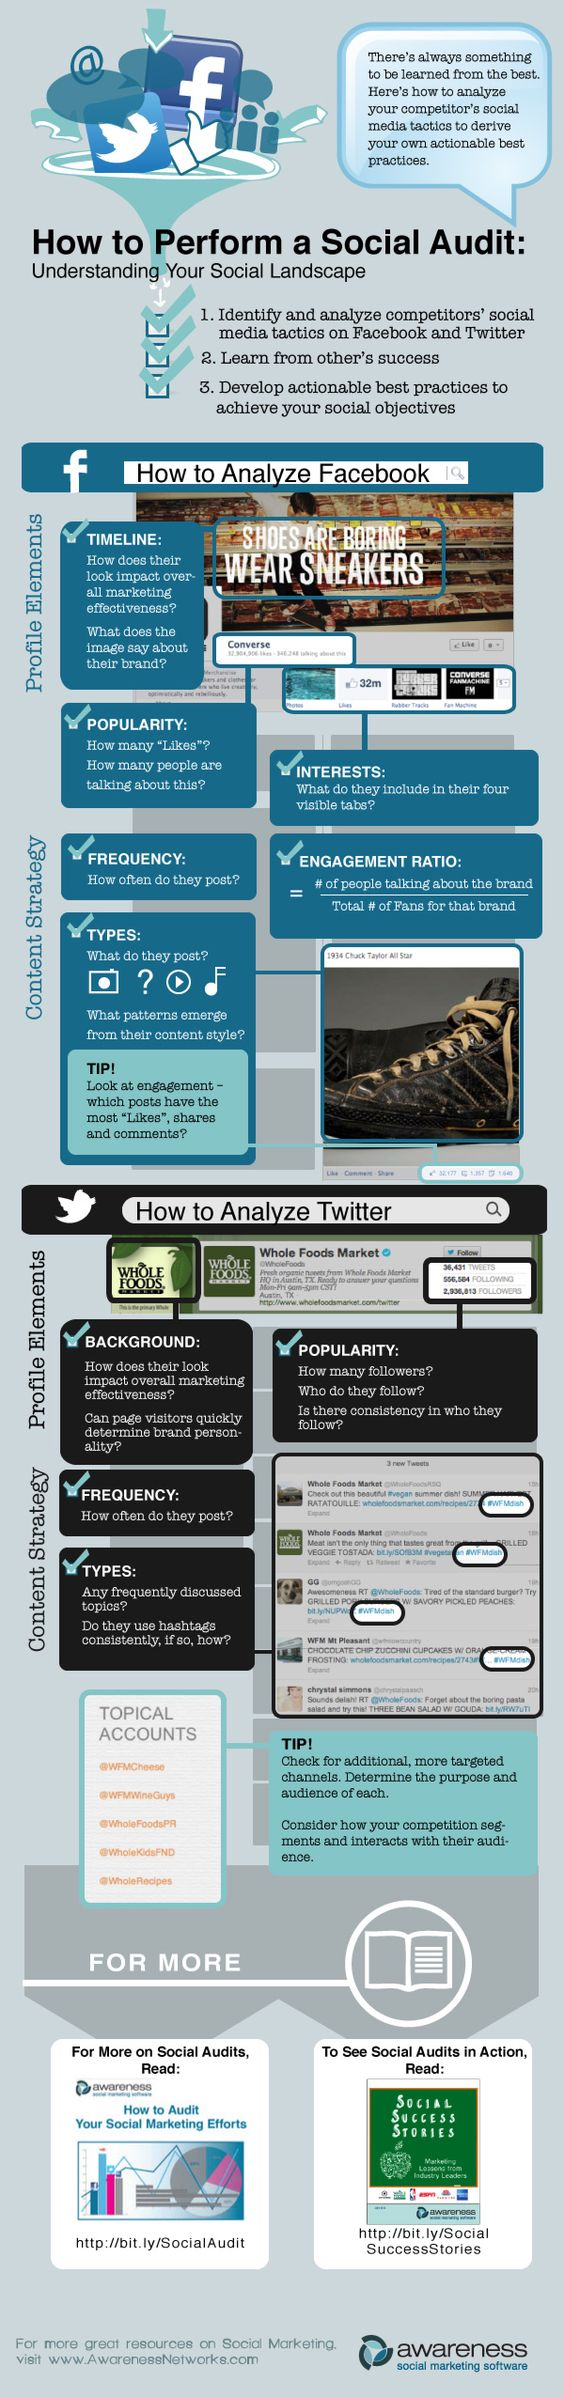 How to perform a #social #media #audit of your competitors - #infographic